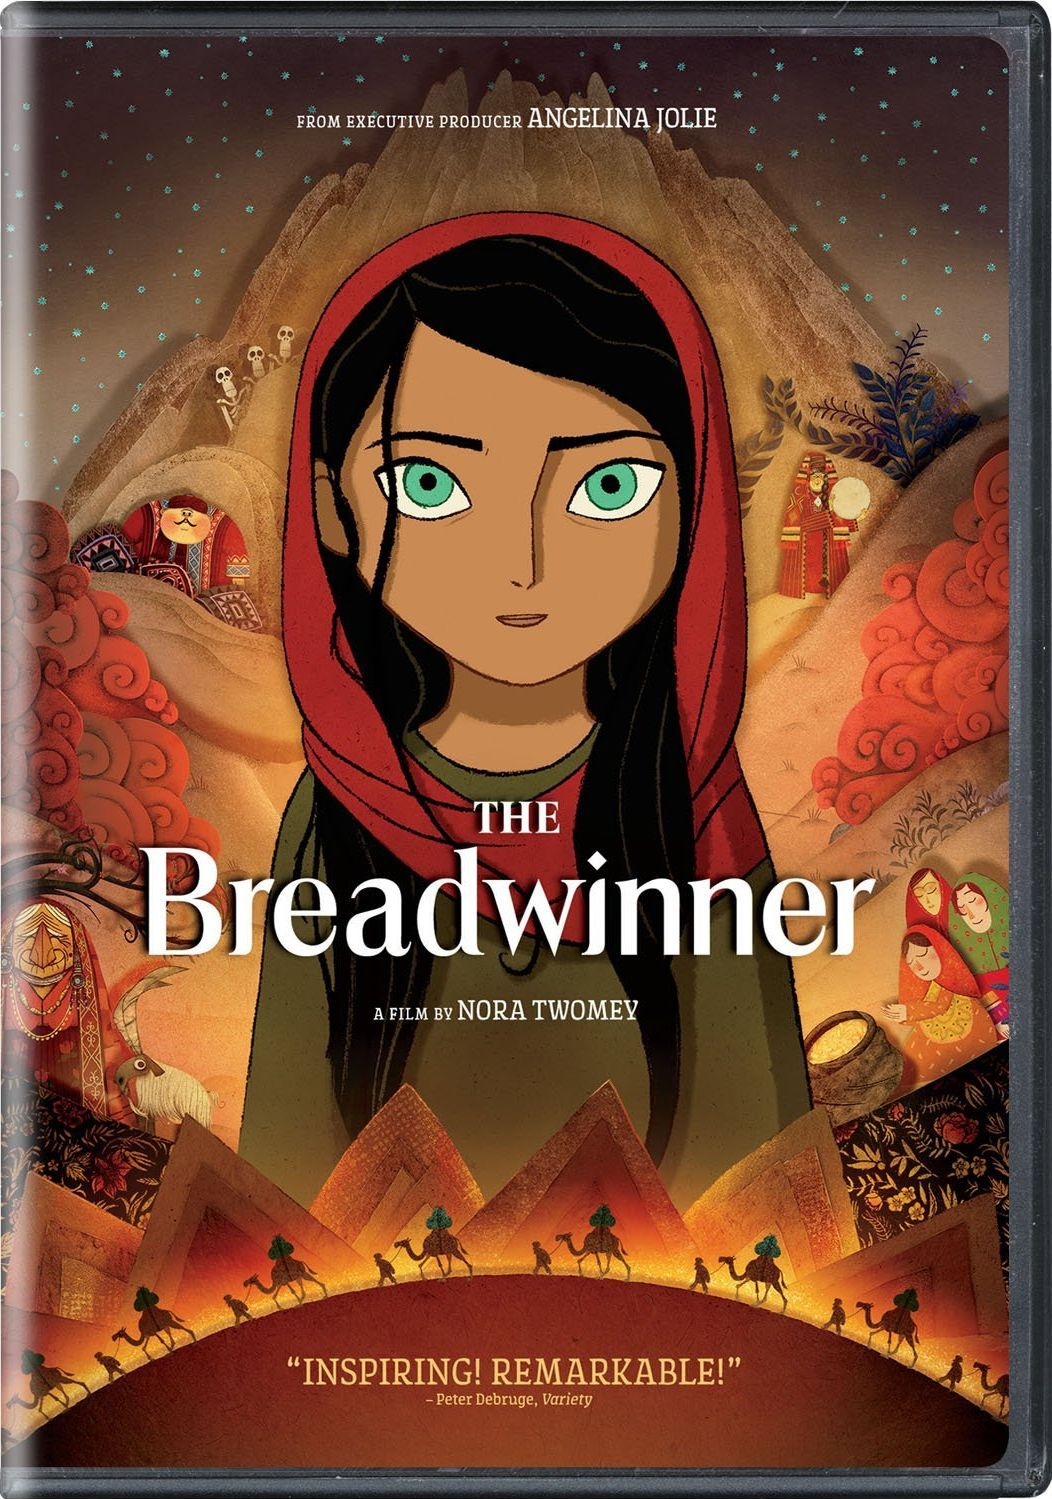 'The Breadwinner' (2017) Animated movie posters